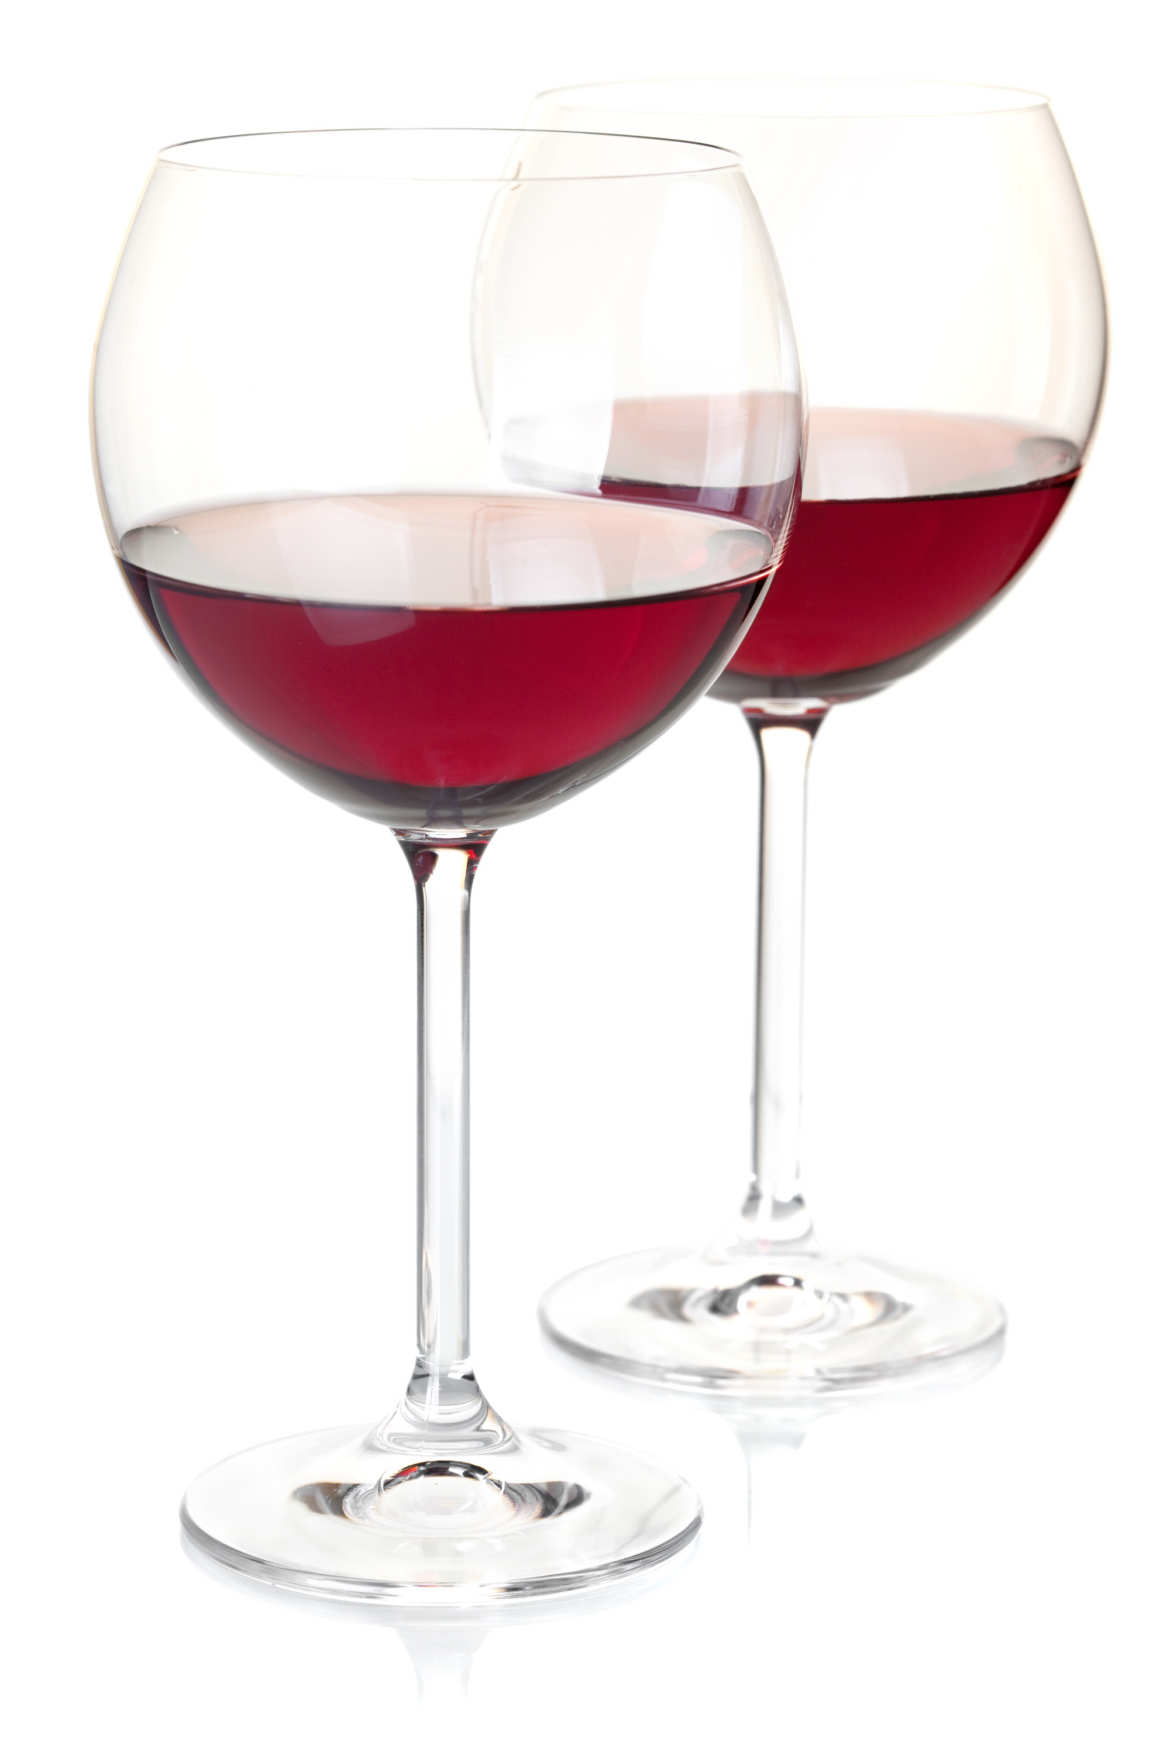 photodune-3183182-red-wine-in-glasses-l.jpg